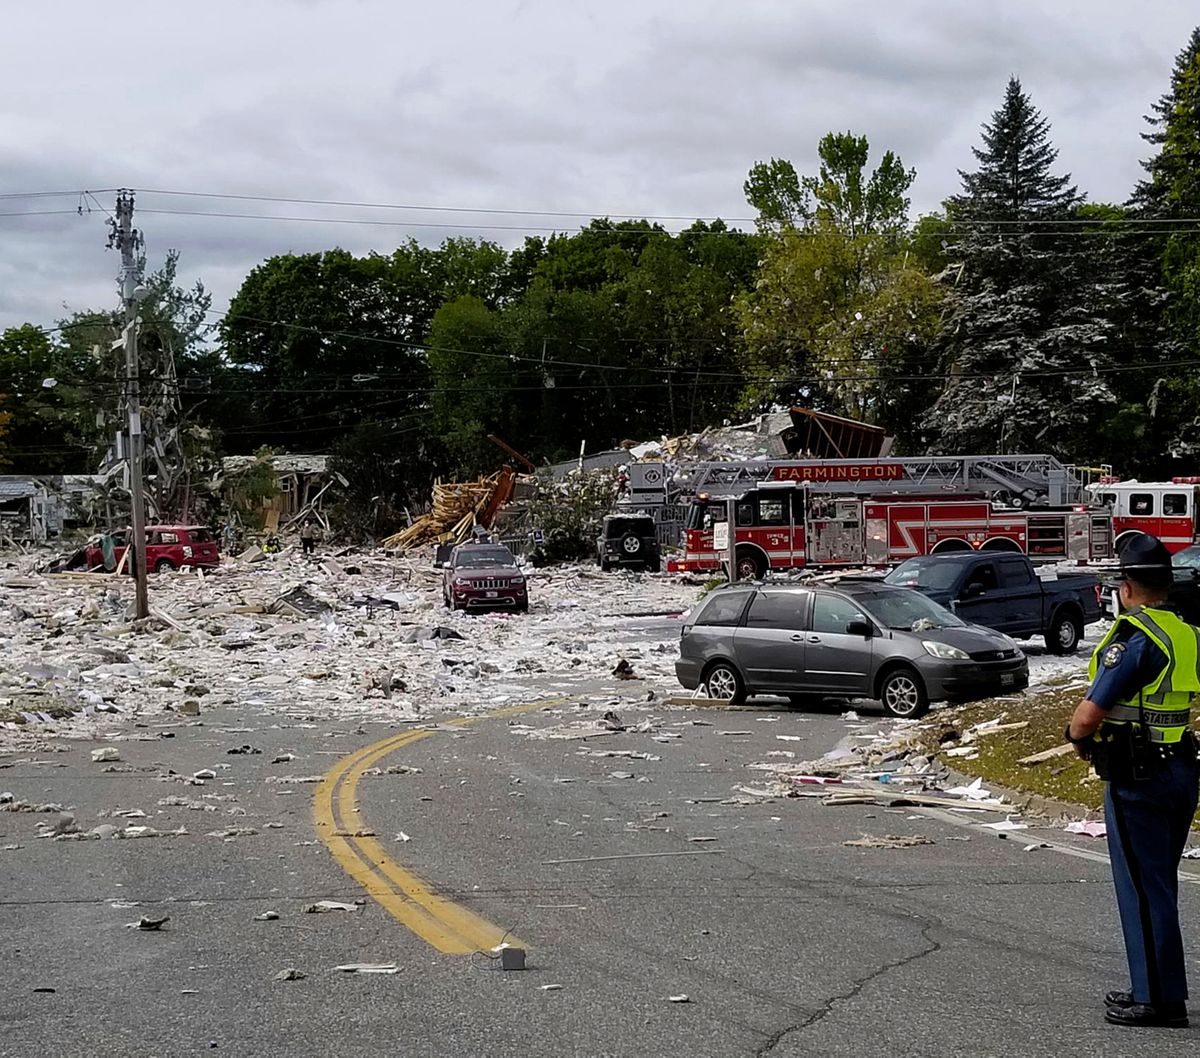 Firefighter killed in ME building explosion